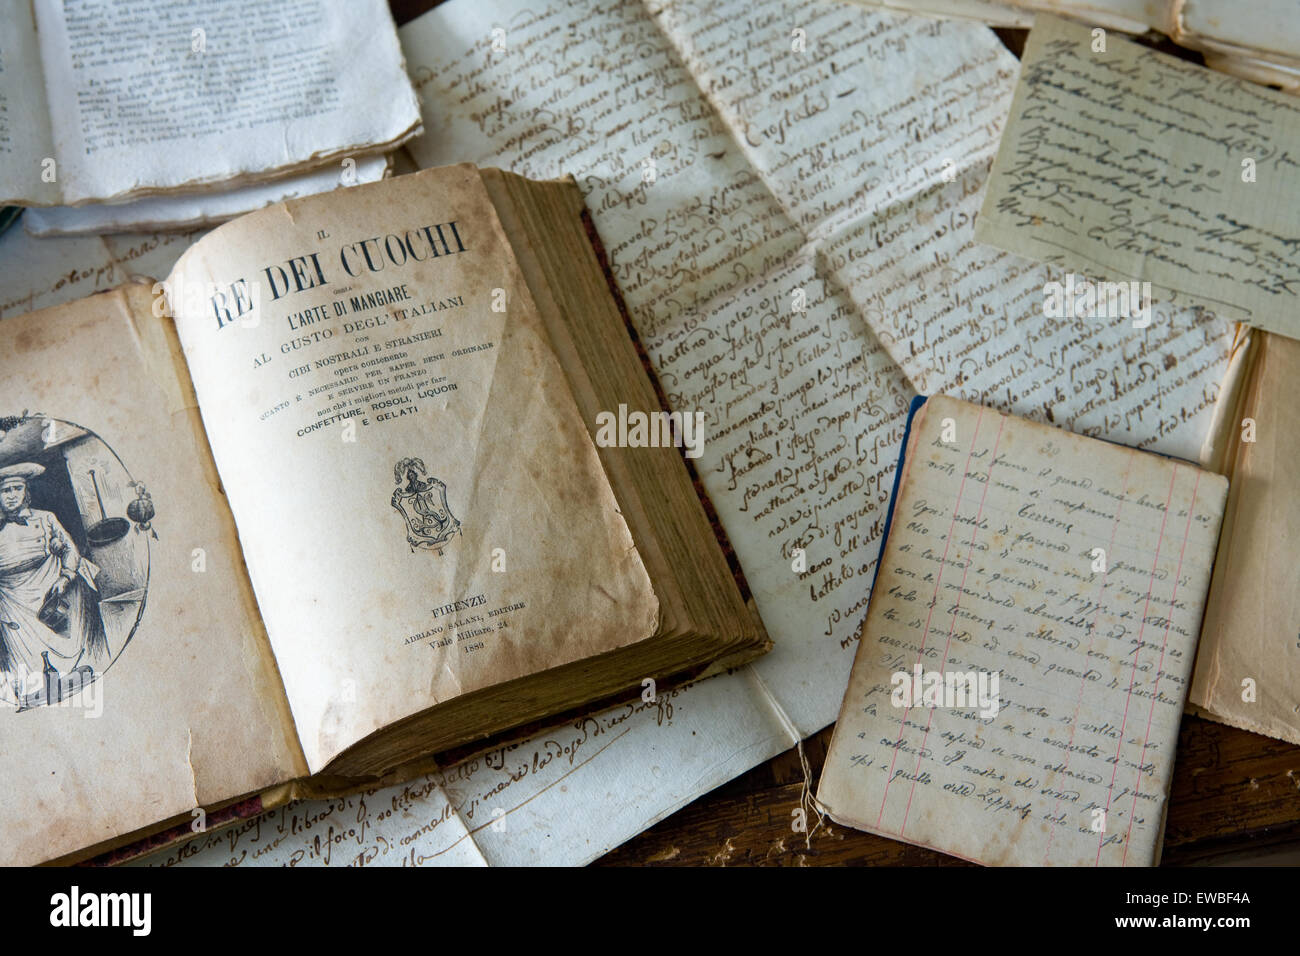 Very old Italian cook book with hand written recipes - Stock Image